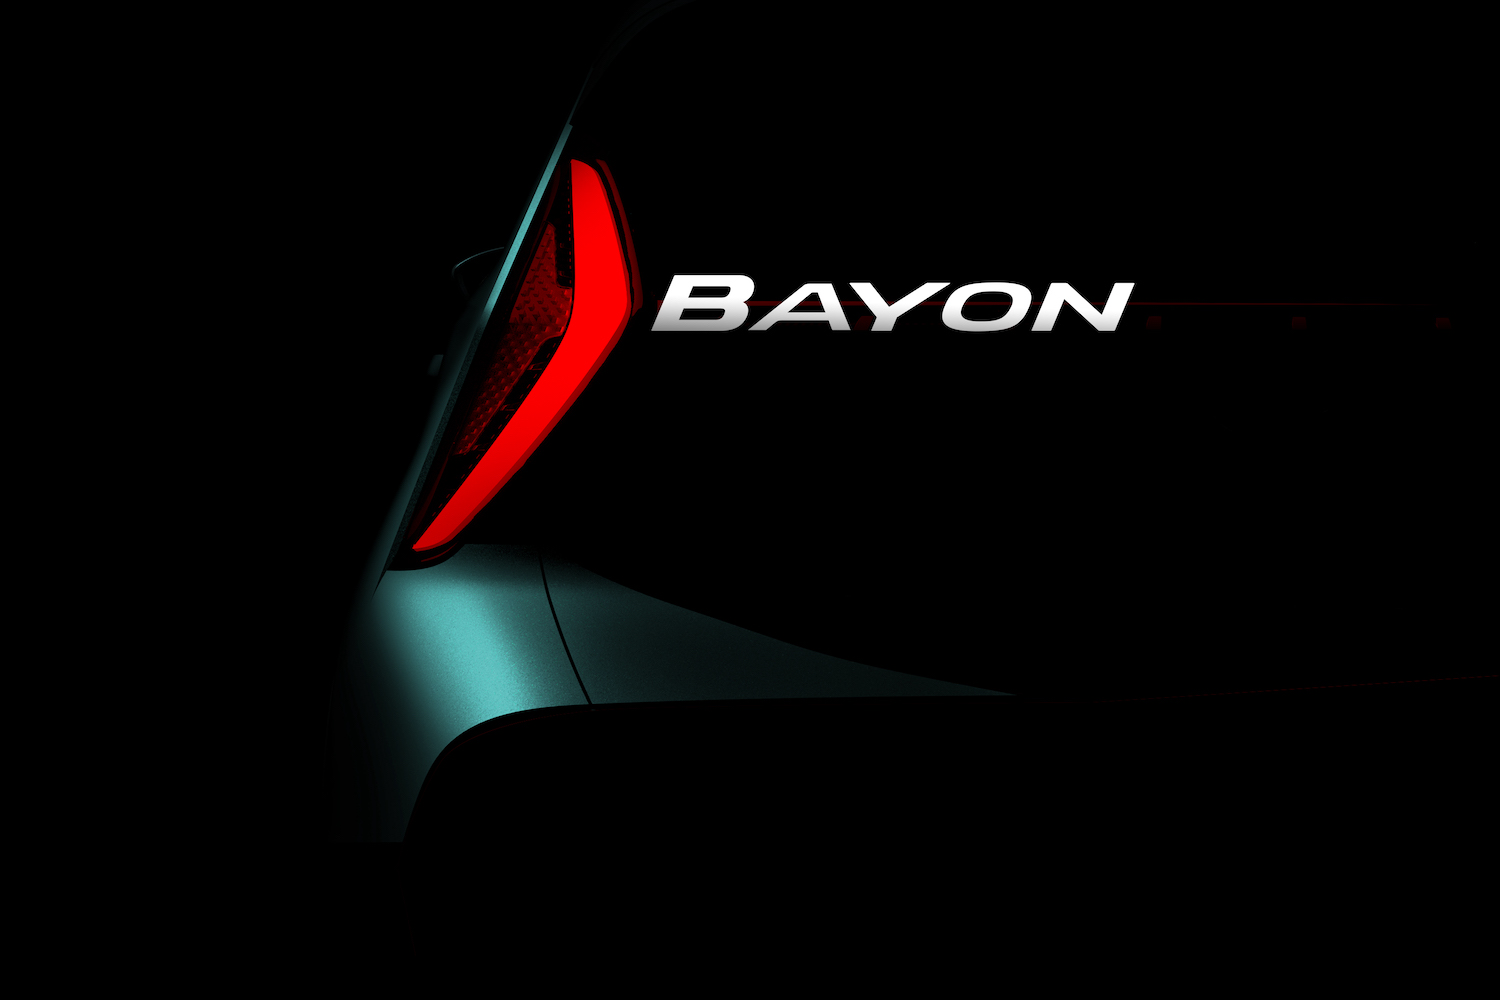 Car News | Hyundai preps new Bayon crossover | CompleteCar.ie